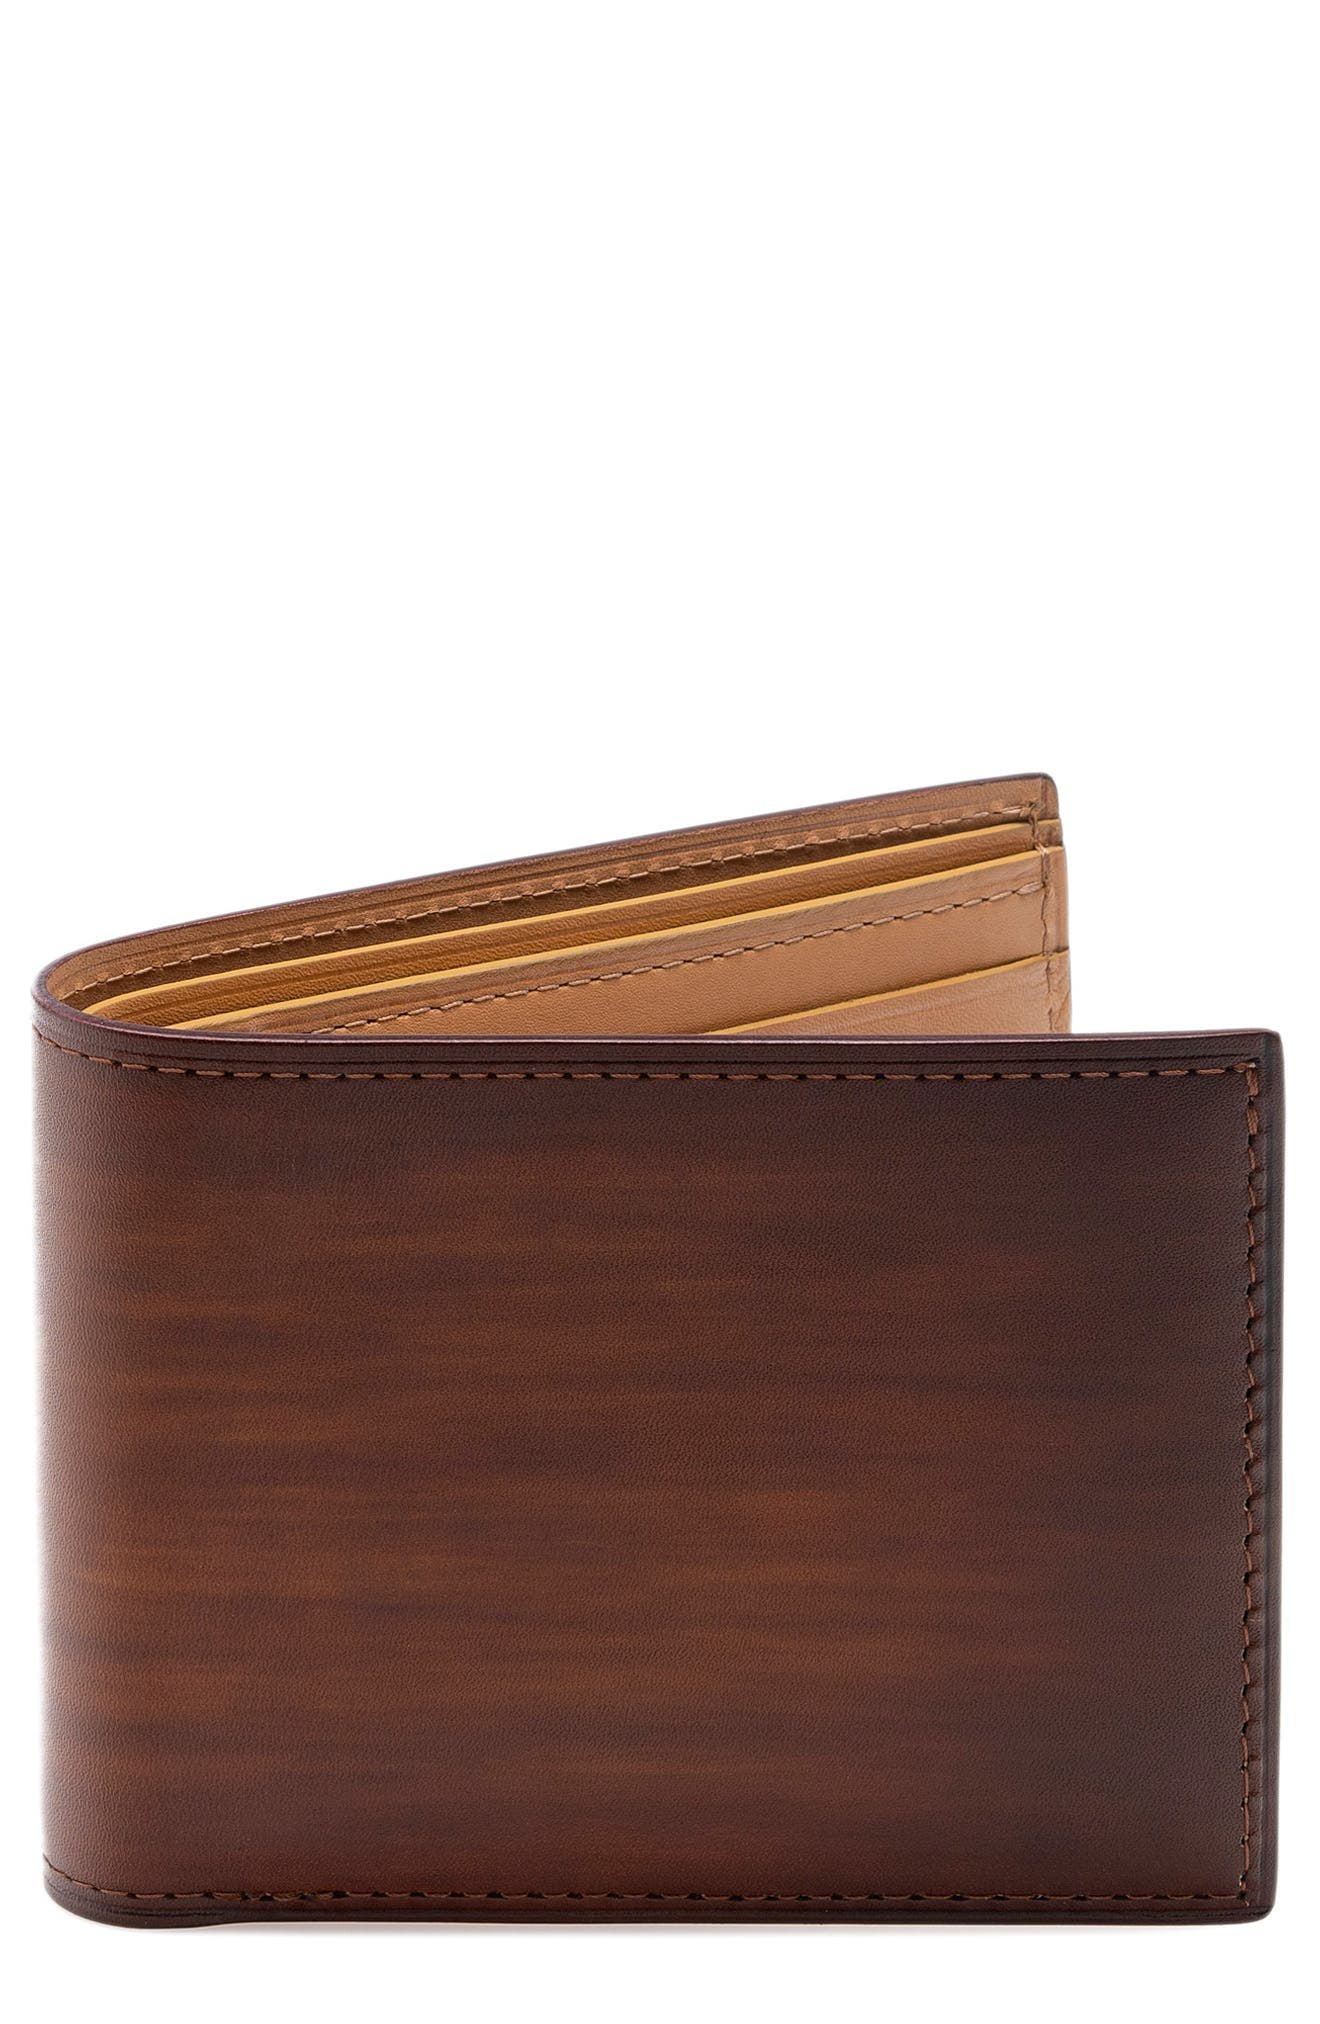 Hearty, hand-antiqued calfskin defines a handsome wallet with versatile style and utility. Style Name: Magnanni Leather Wallet. Style Number: 5851728. Available in stores.